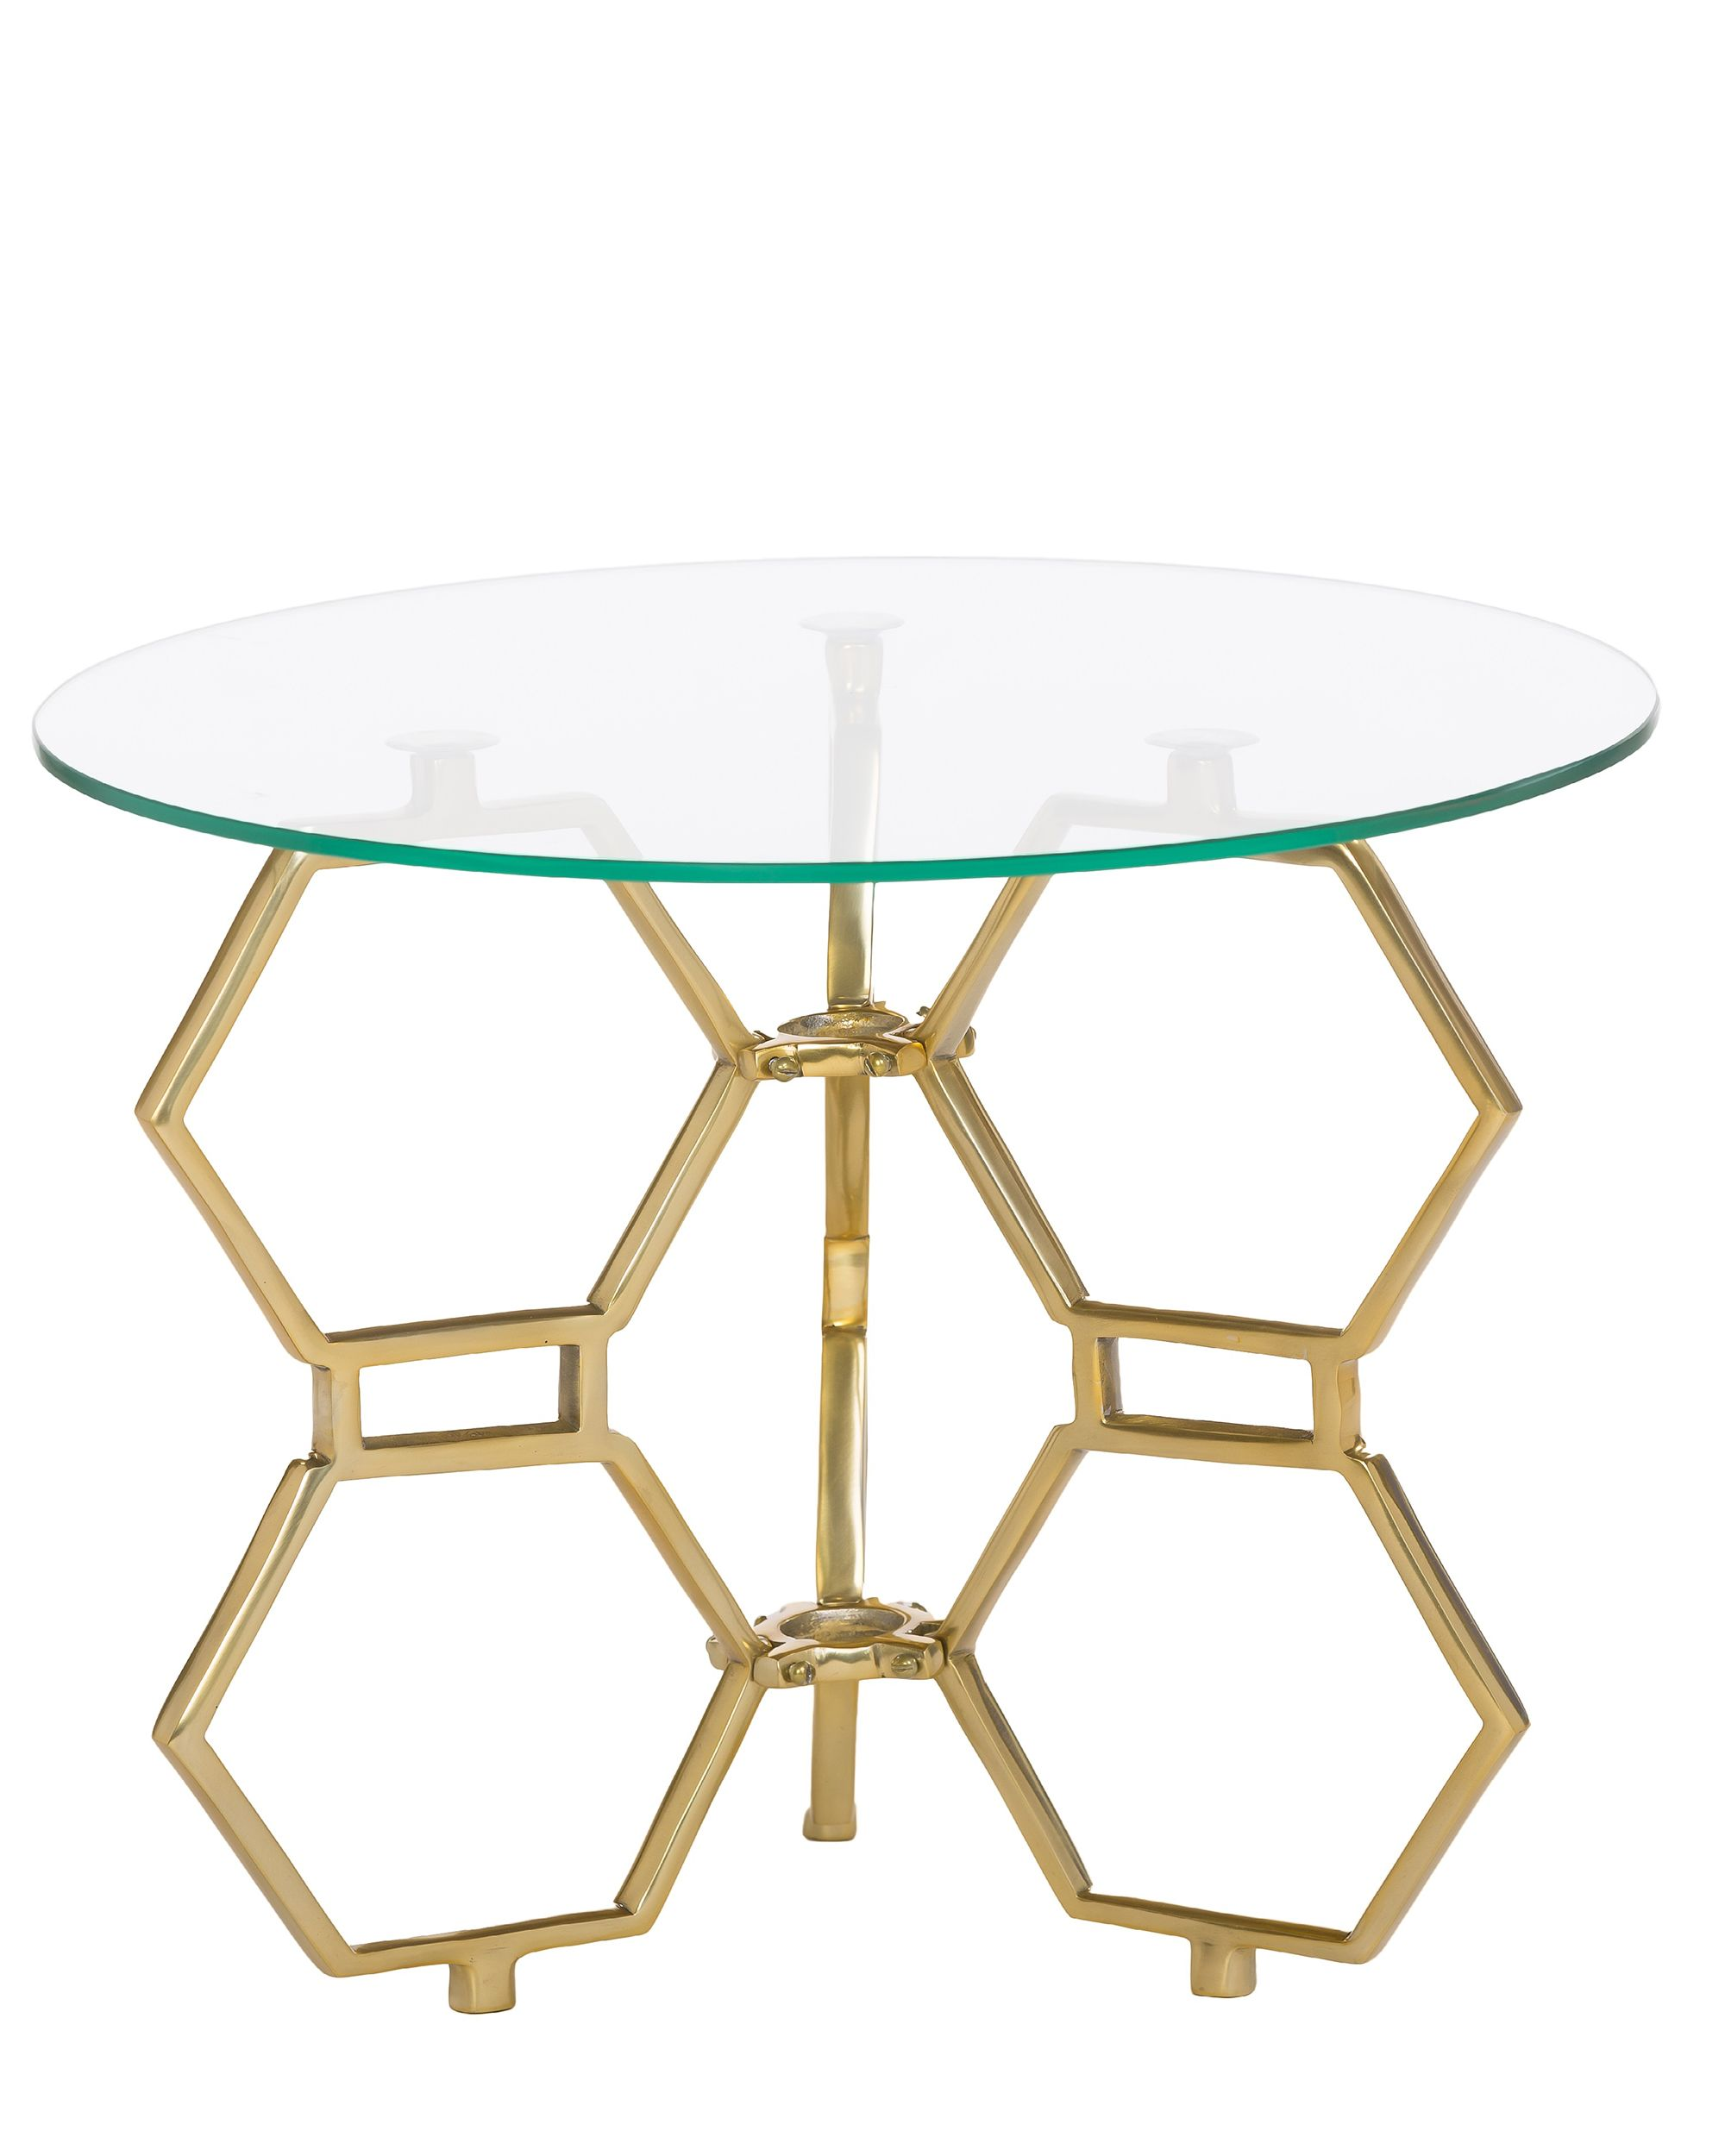 Honeycomb design coffee table with glass top